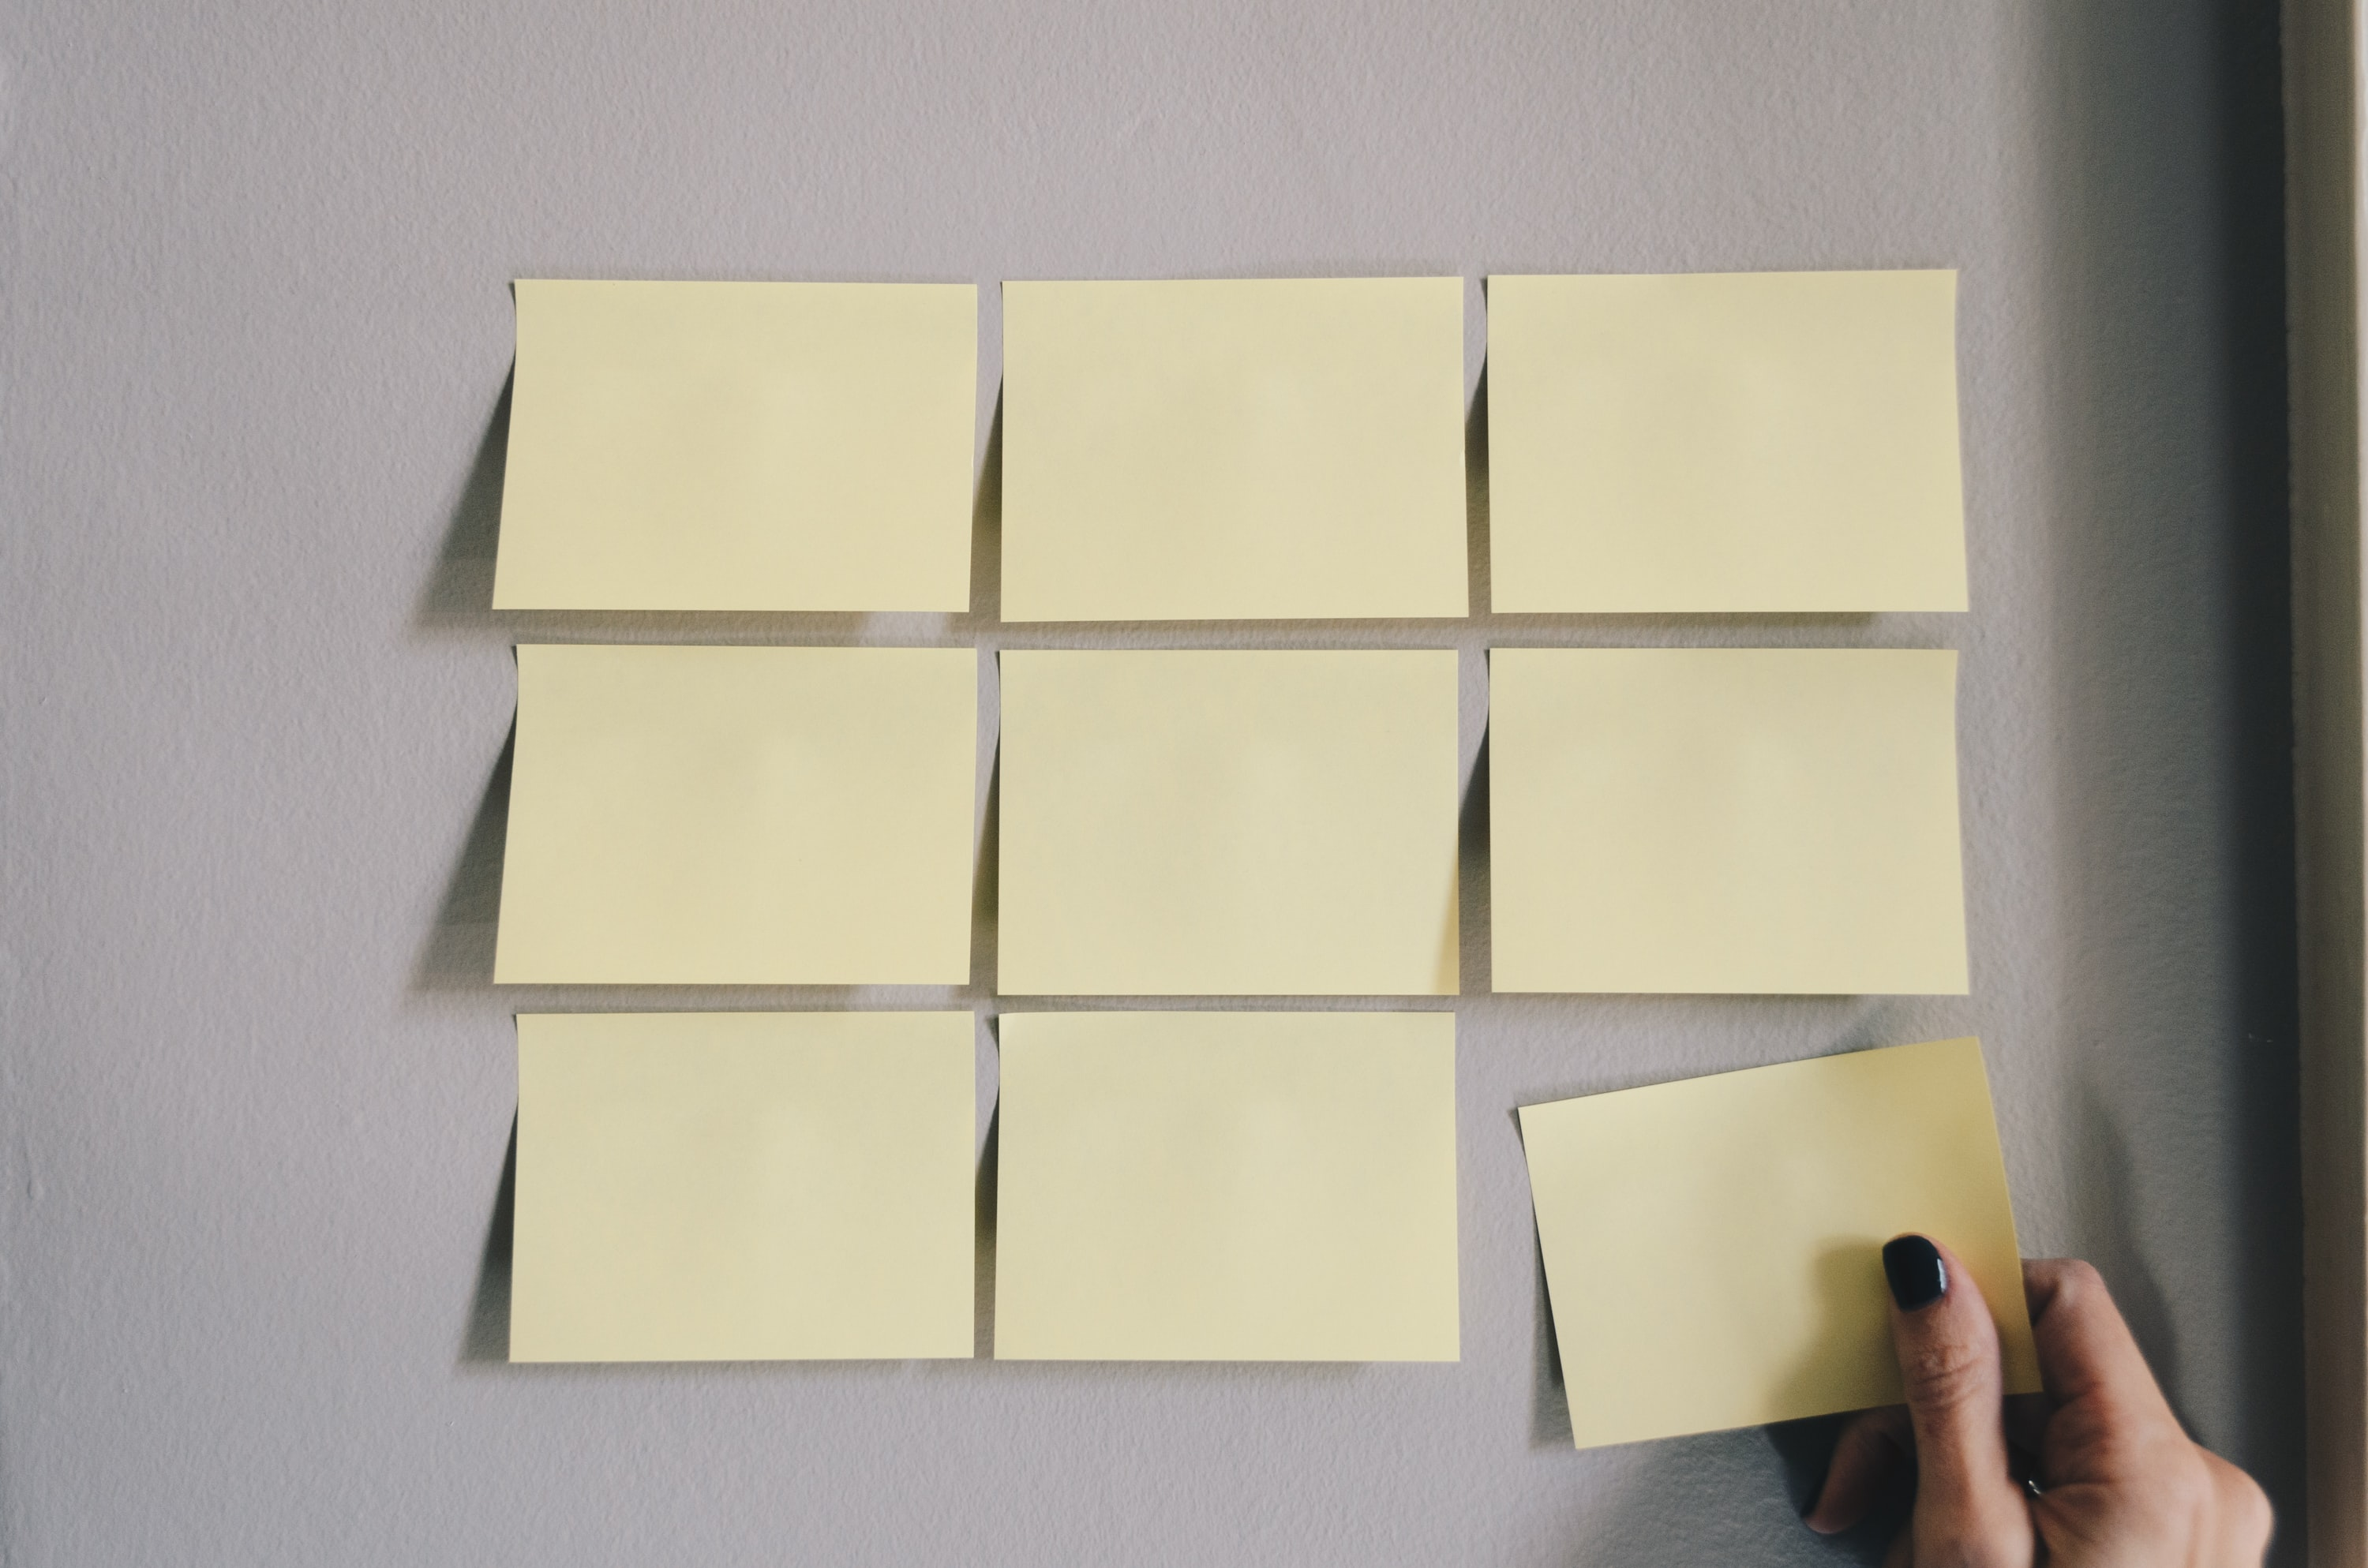 Blank post-it notes on a wall